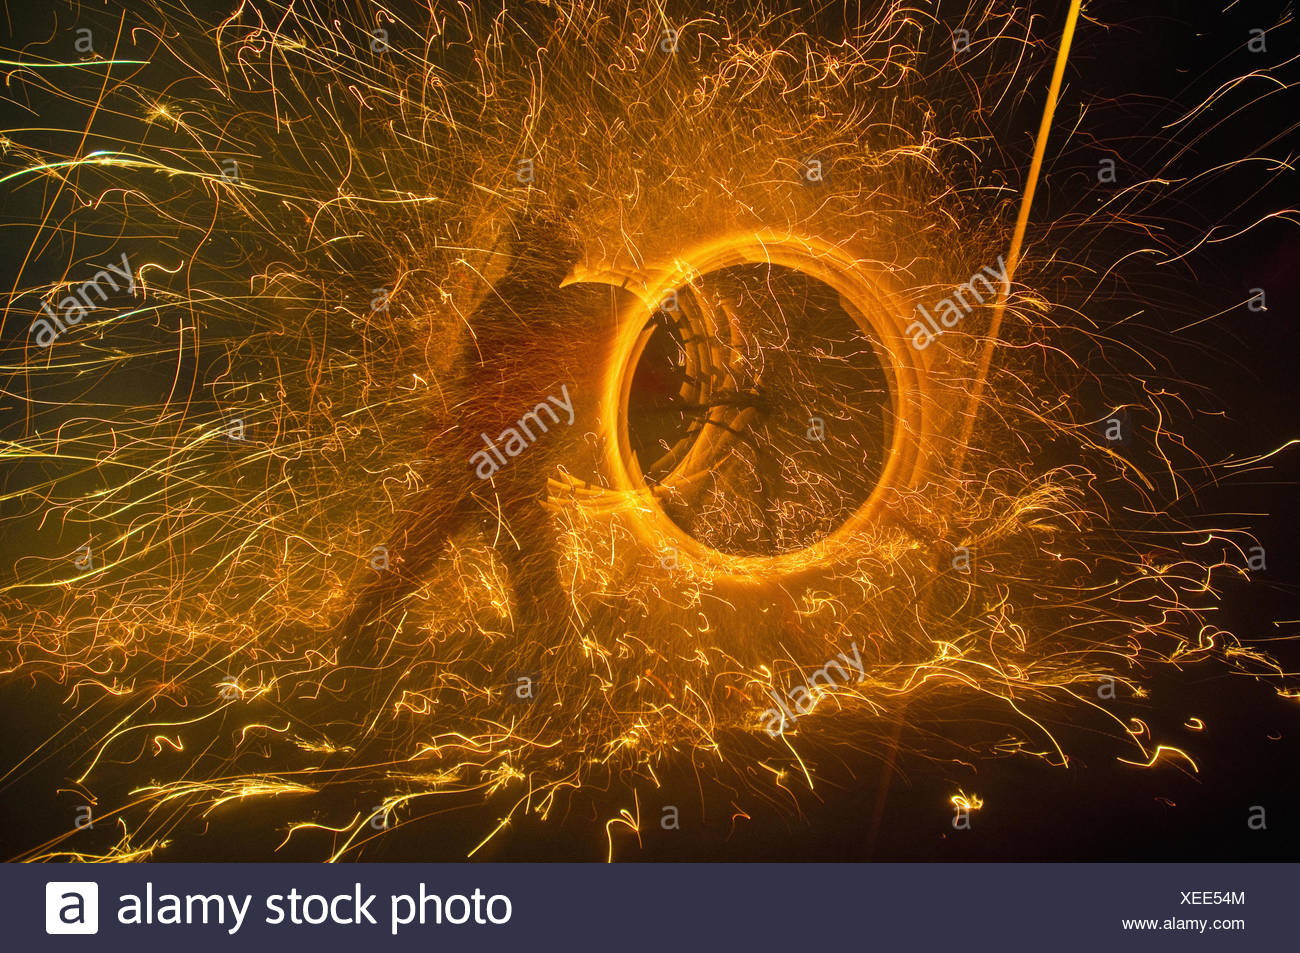 Fire Festival of the Catalonian Regions - Stock Image